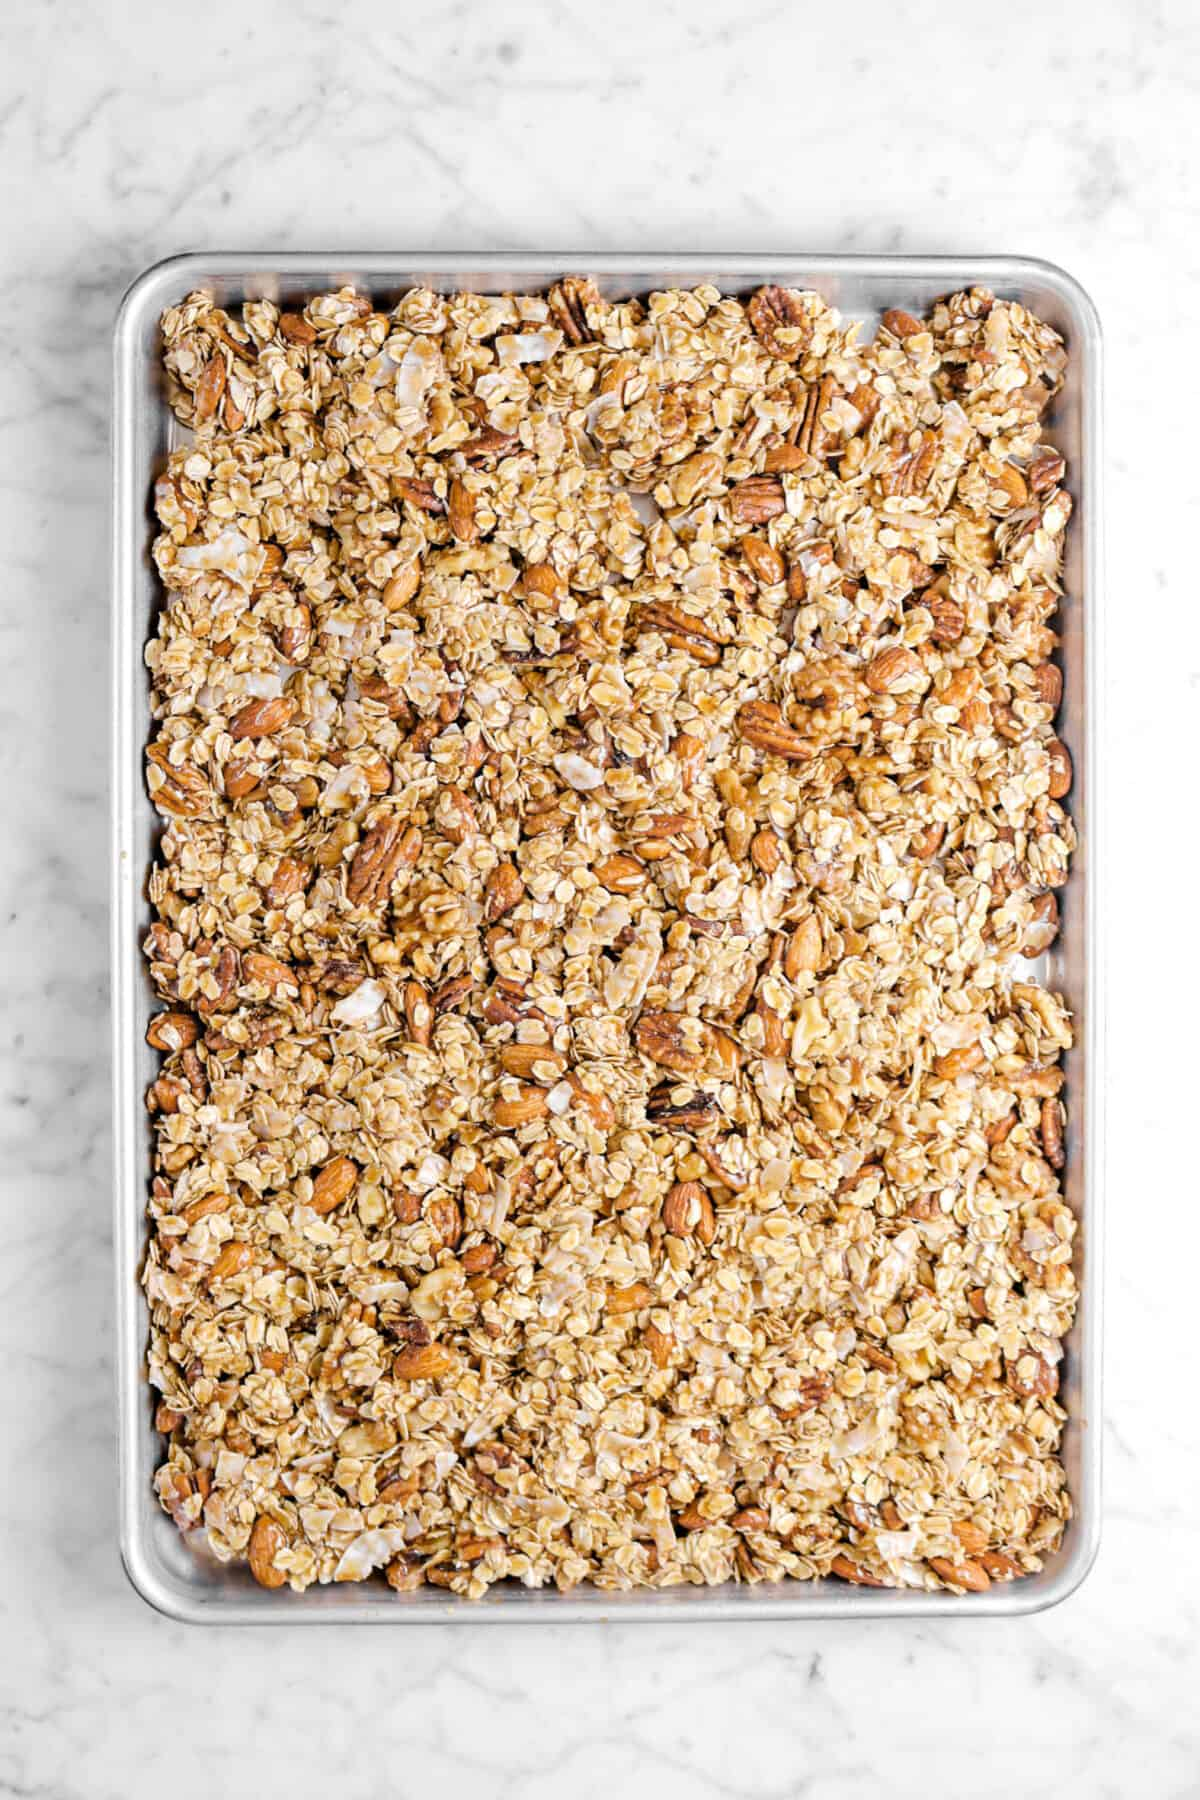 granola in sheet pan on marble counter